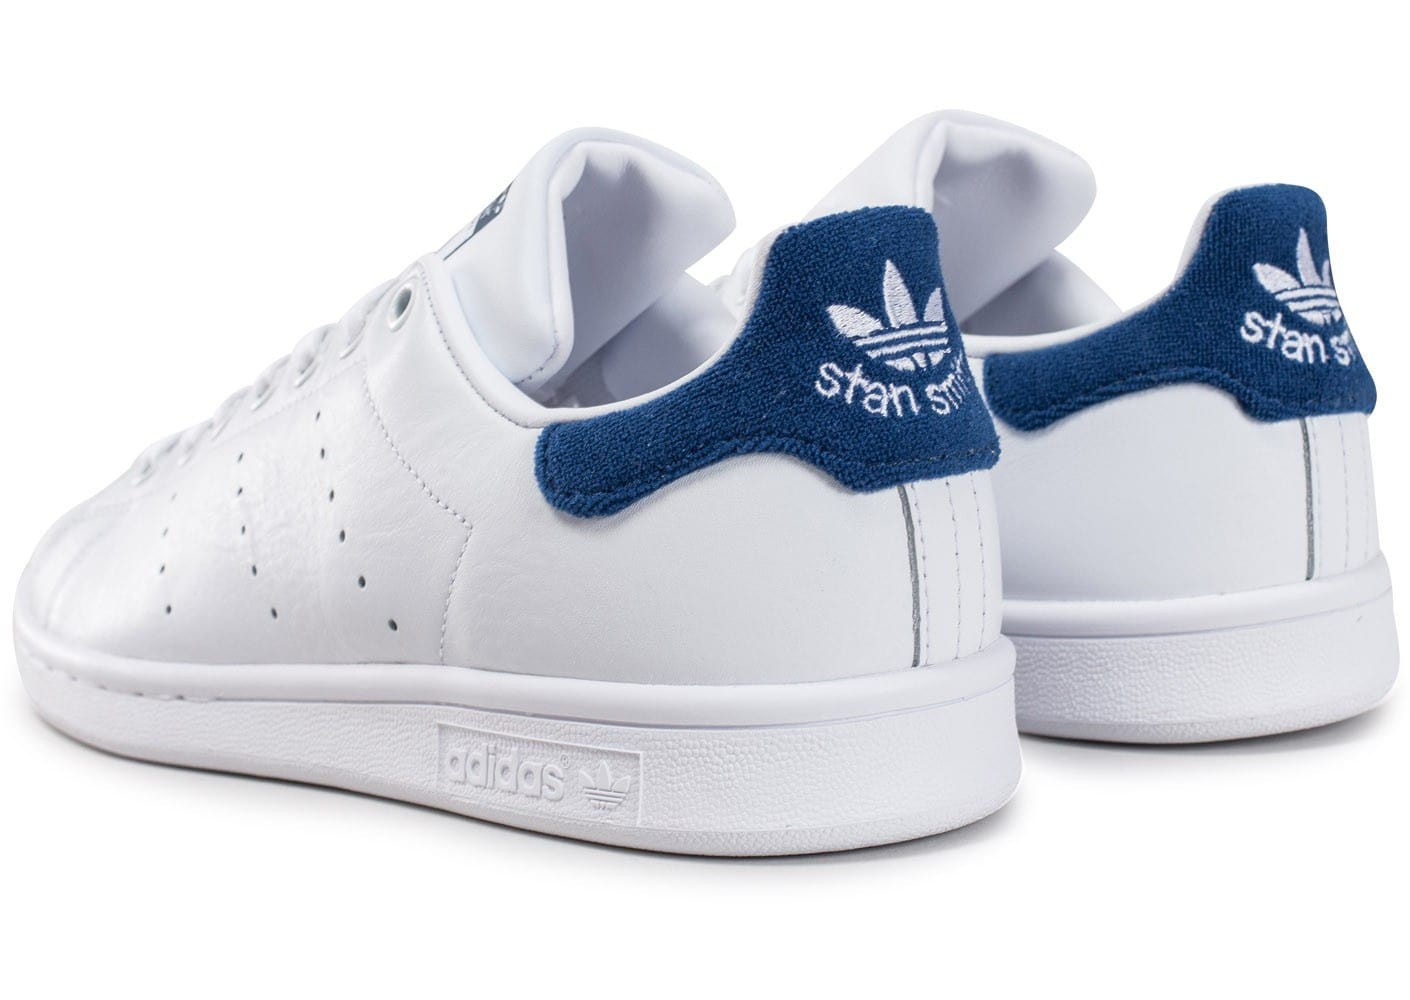 hot products a few days away coupon codes prix stan smith bleu